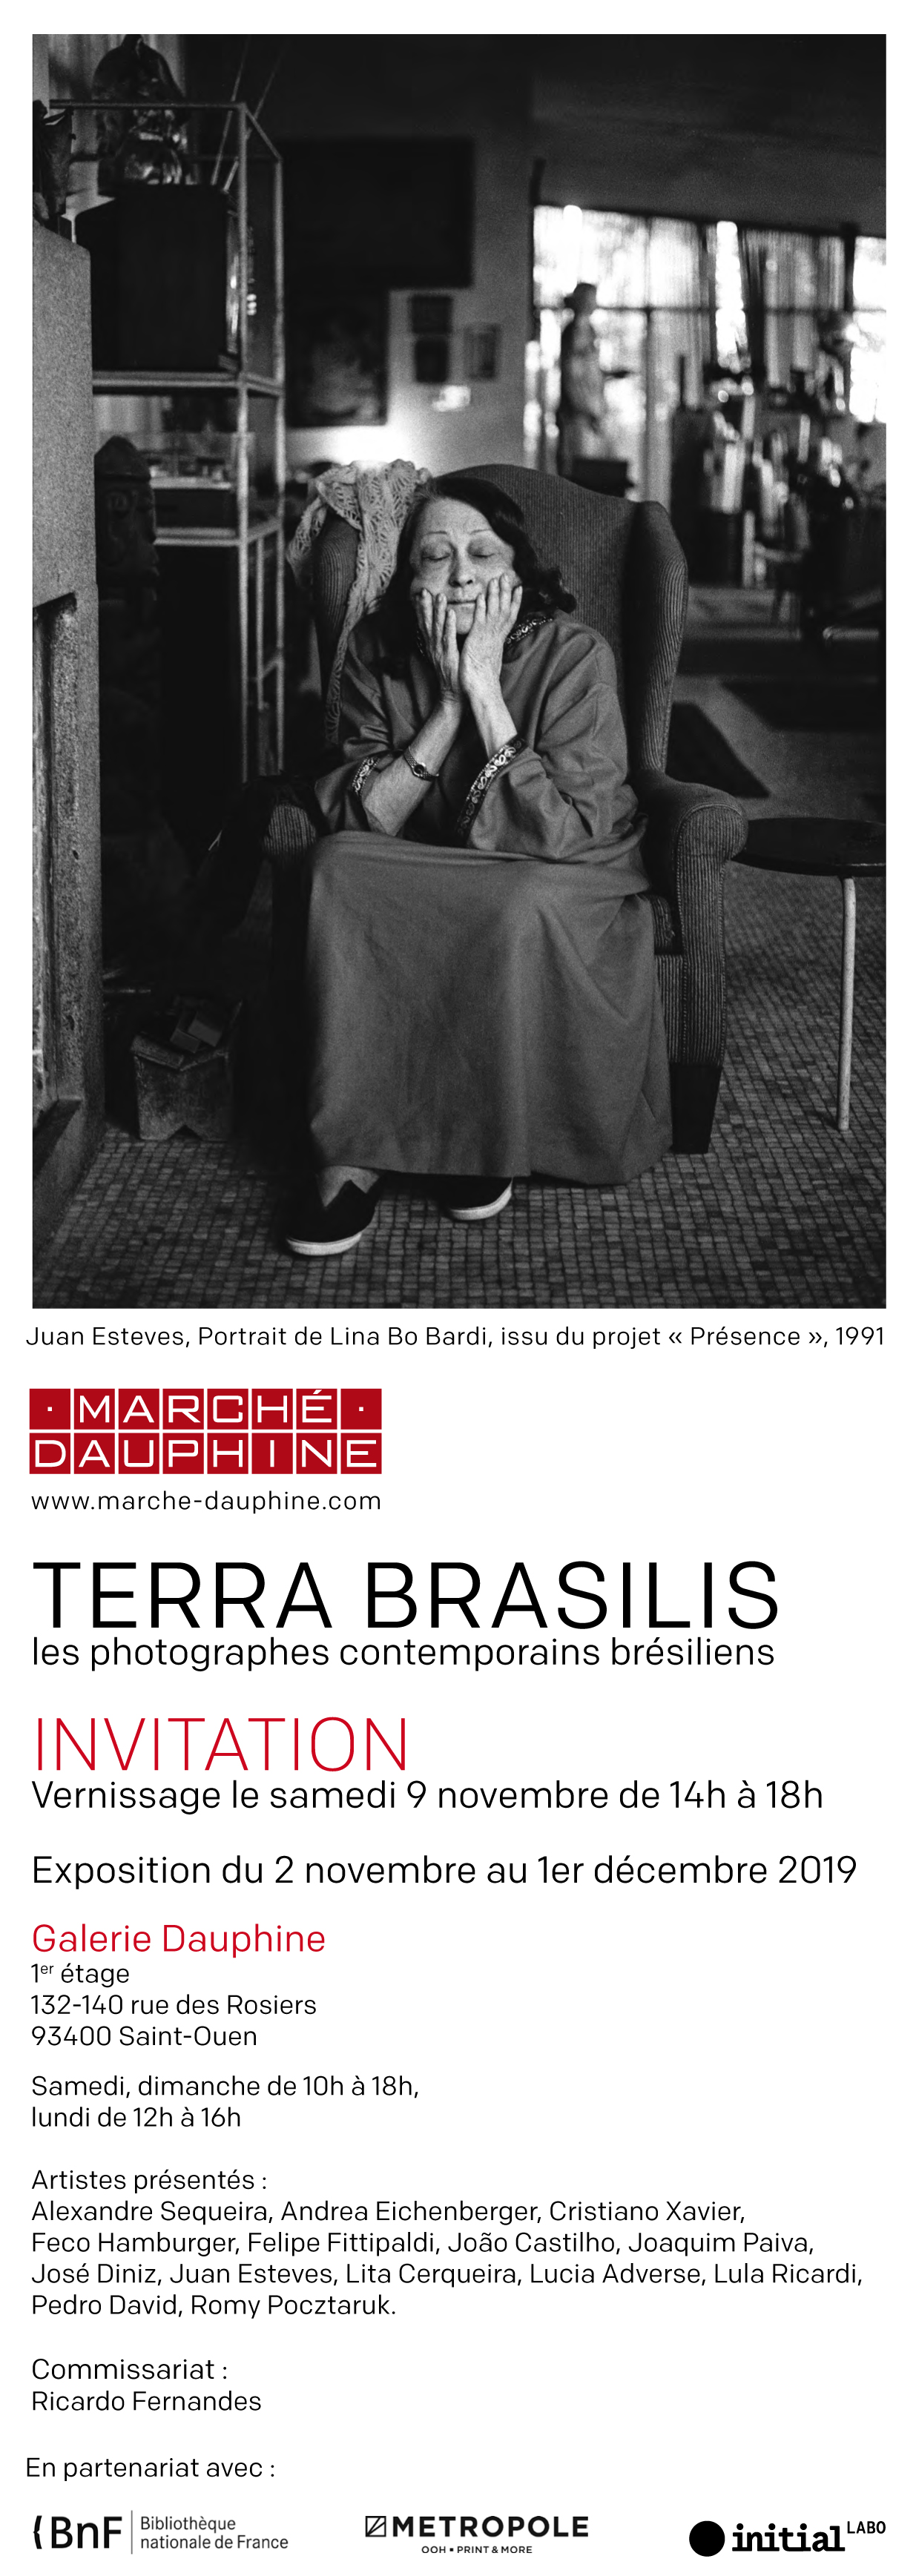 INVITATION terra brasilis